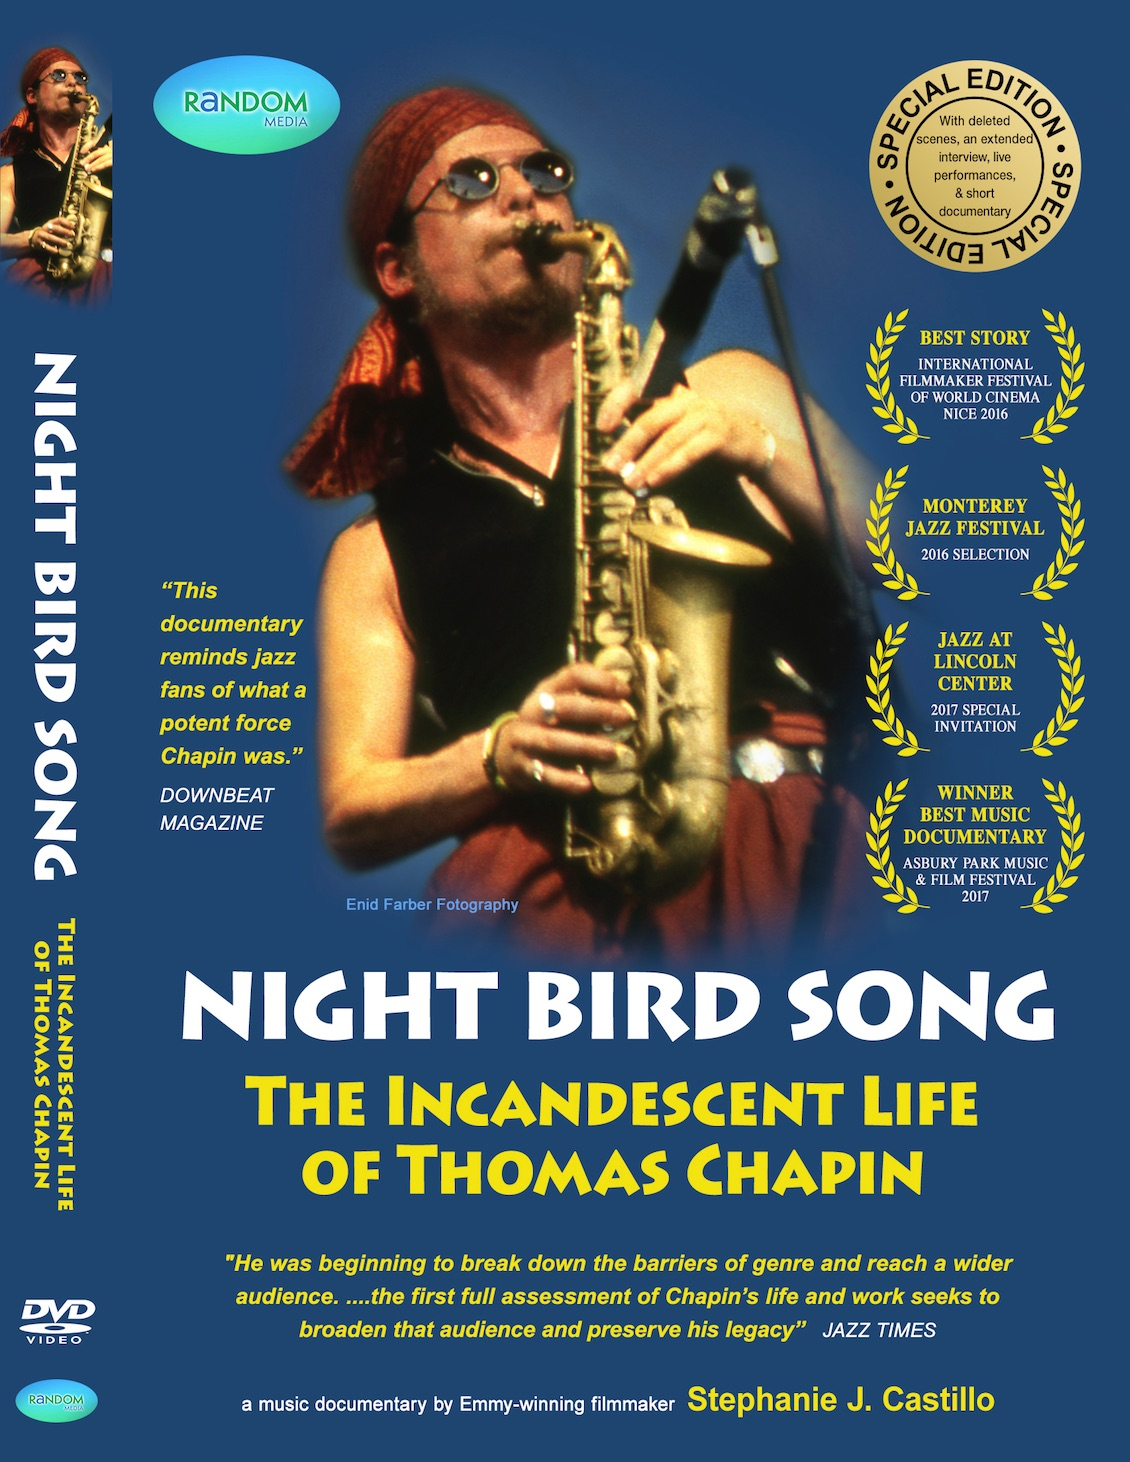 {{Thomas Chapin}} Special Edtion DVD